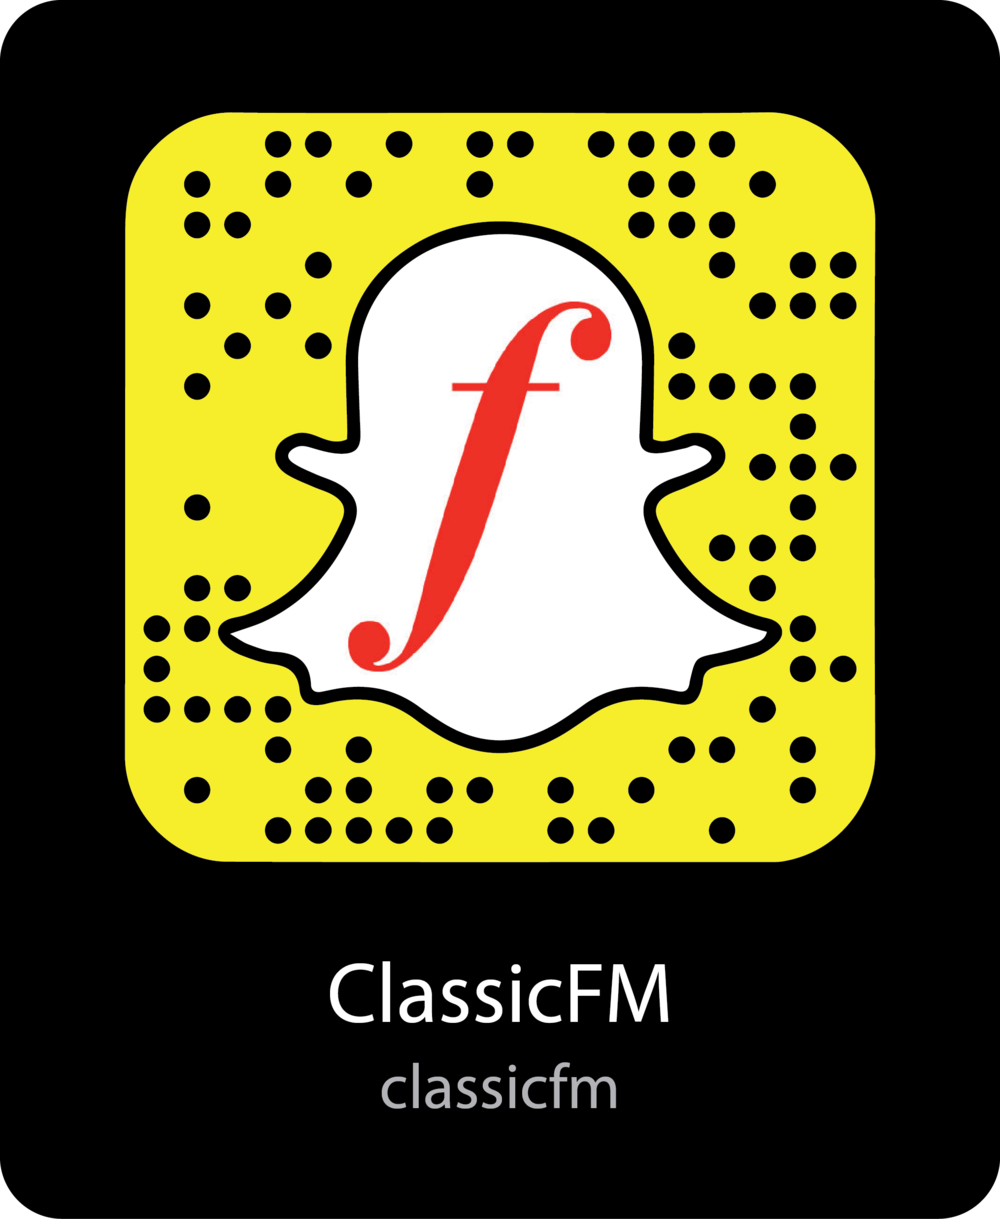 classicfm-Radio-Stations-snapchat-snapcode.png